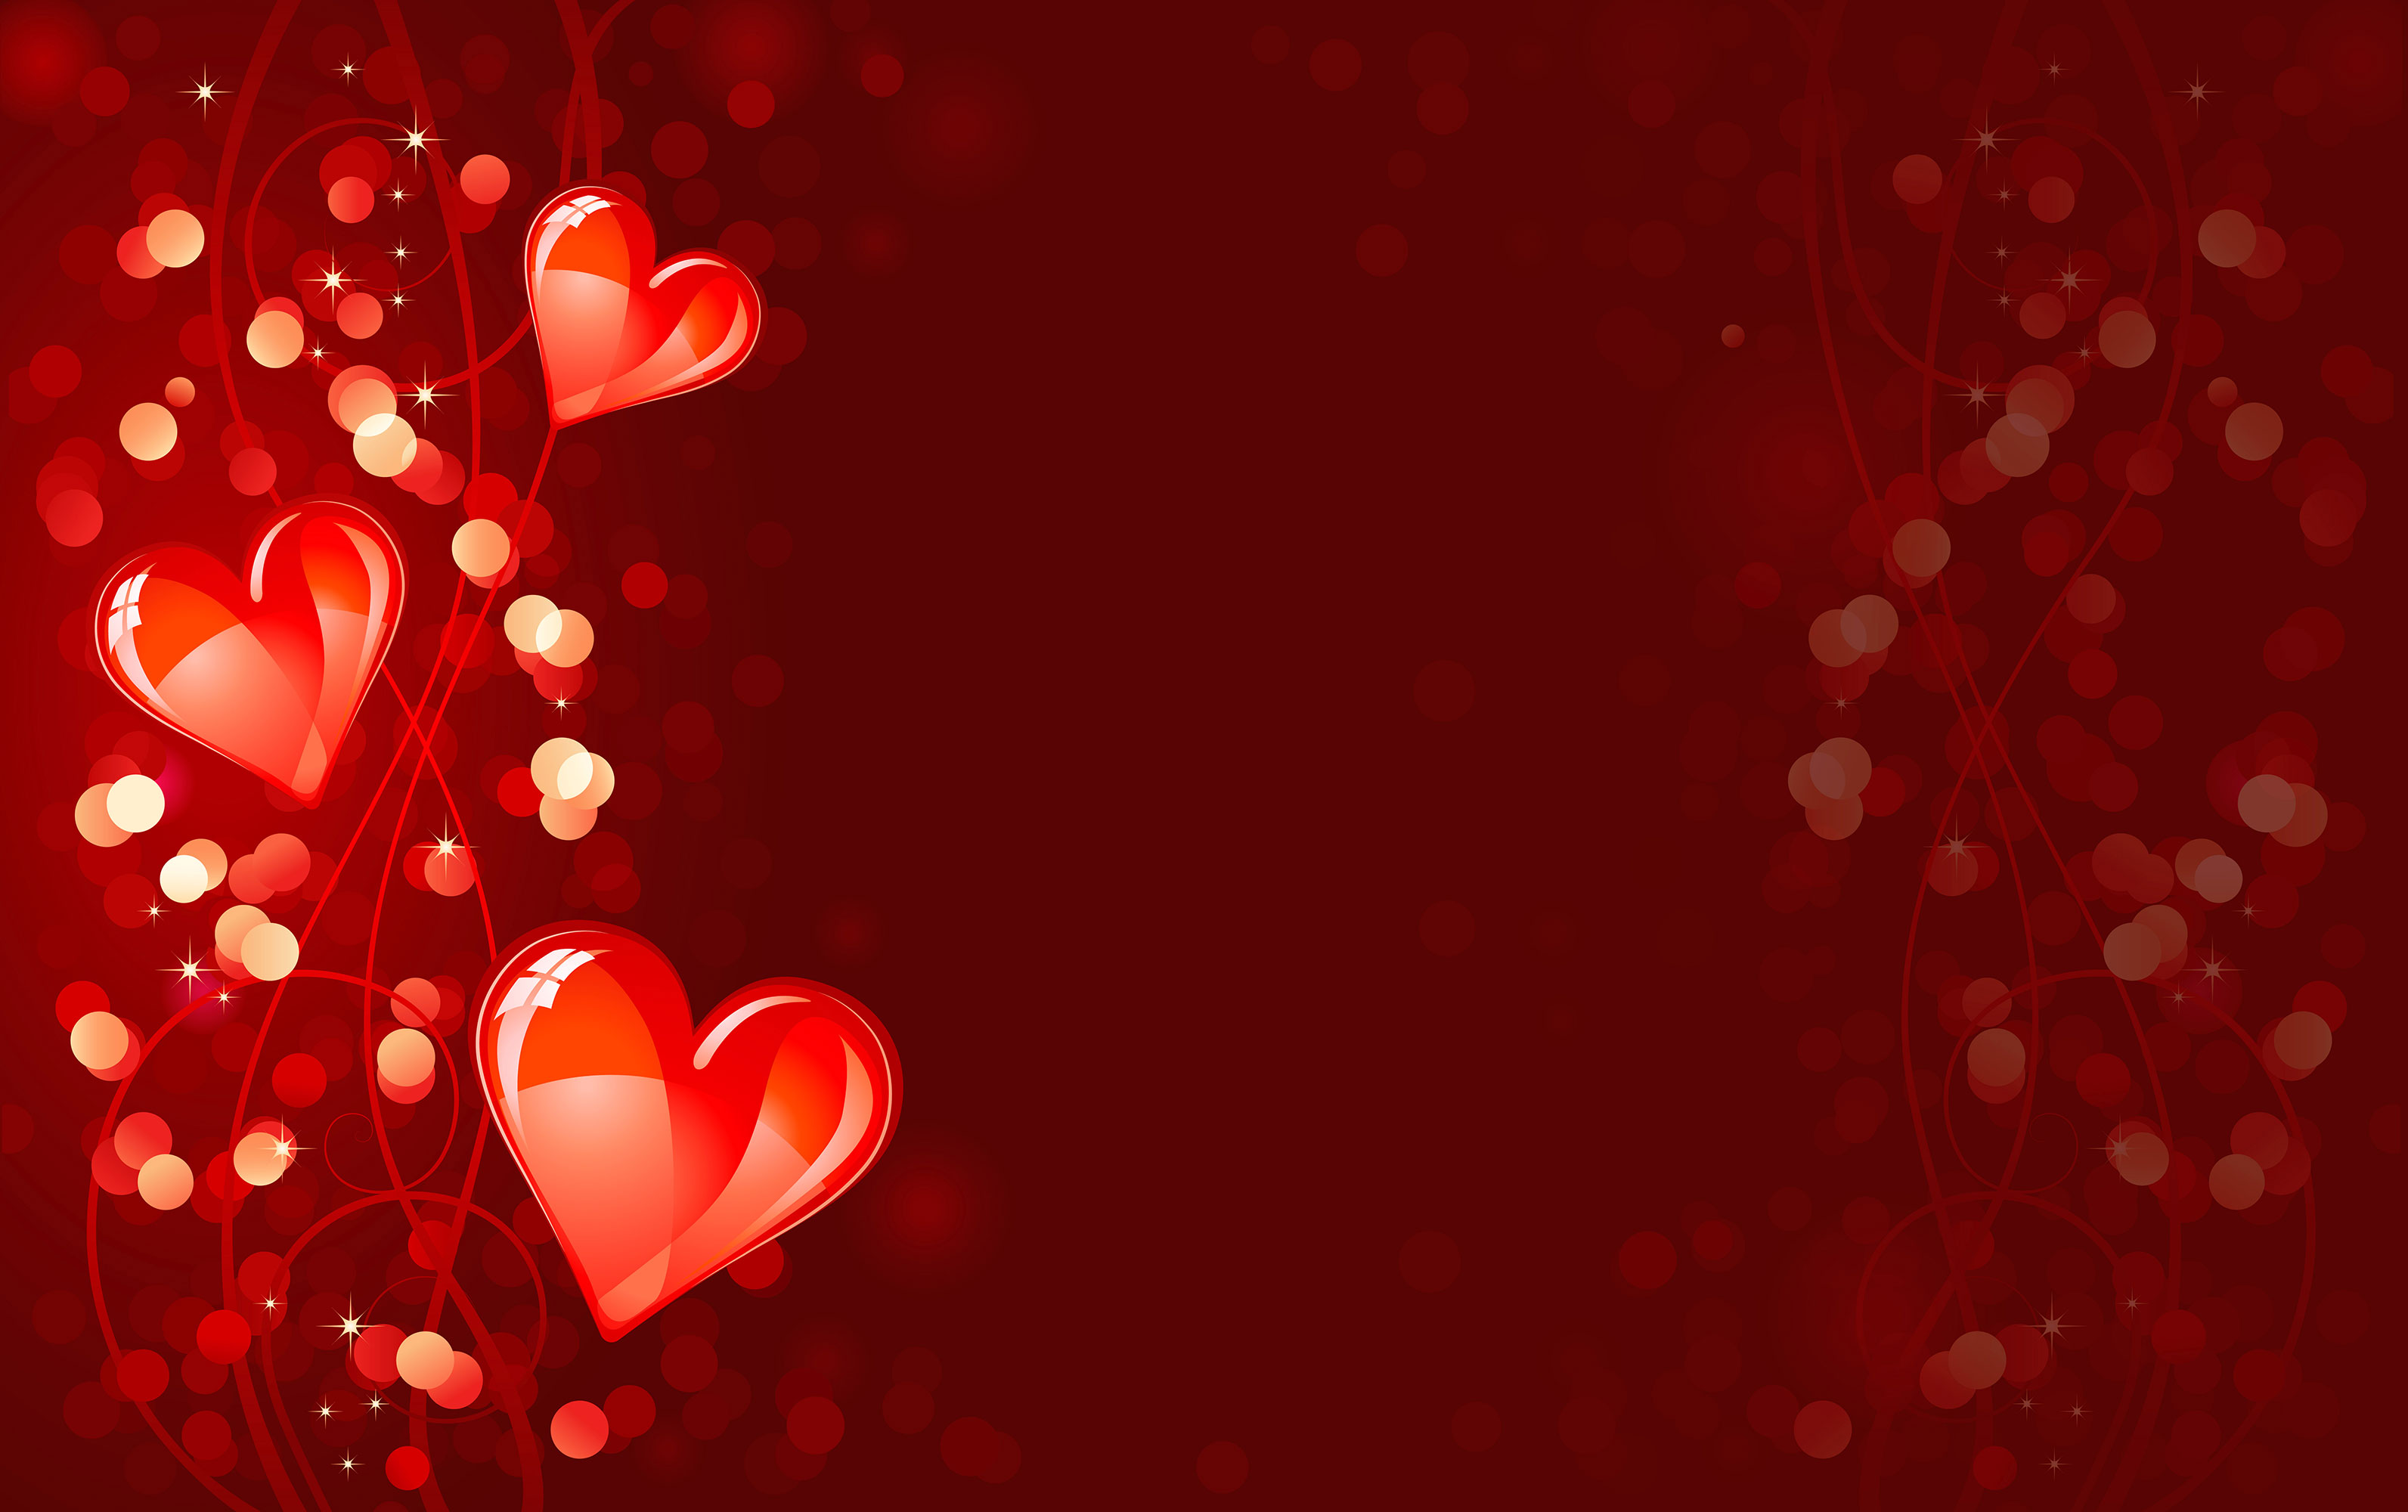 valentines day theme background wallpaper hd